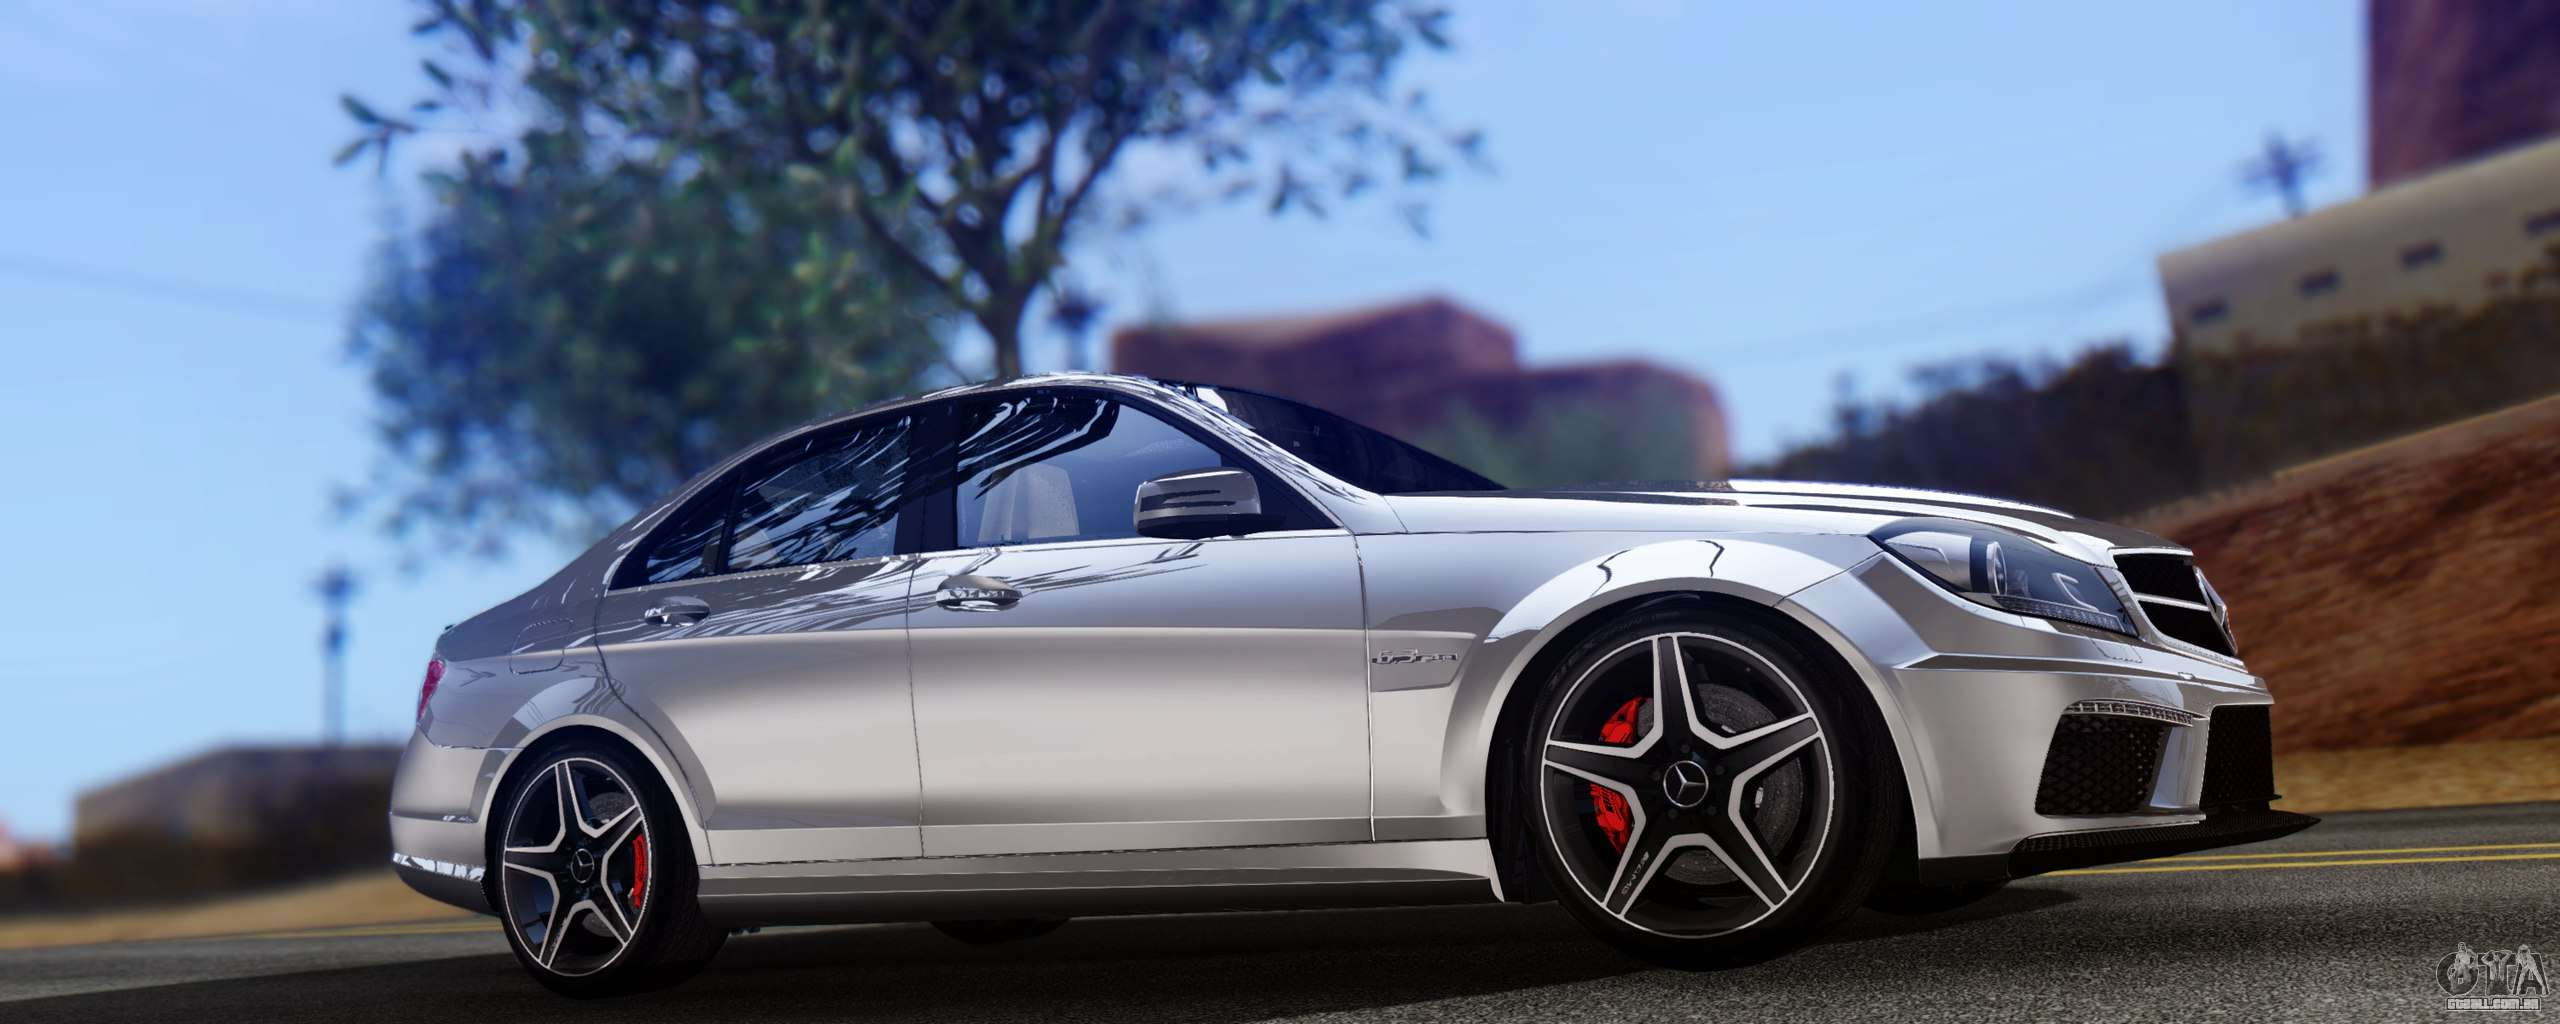 mercedes benz c63 amg 2013 para gta san andreas. Black Bedroom Furniture Sets. Home Design Ideas